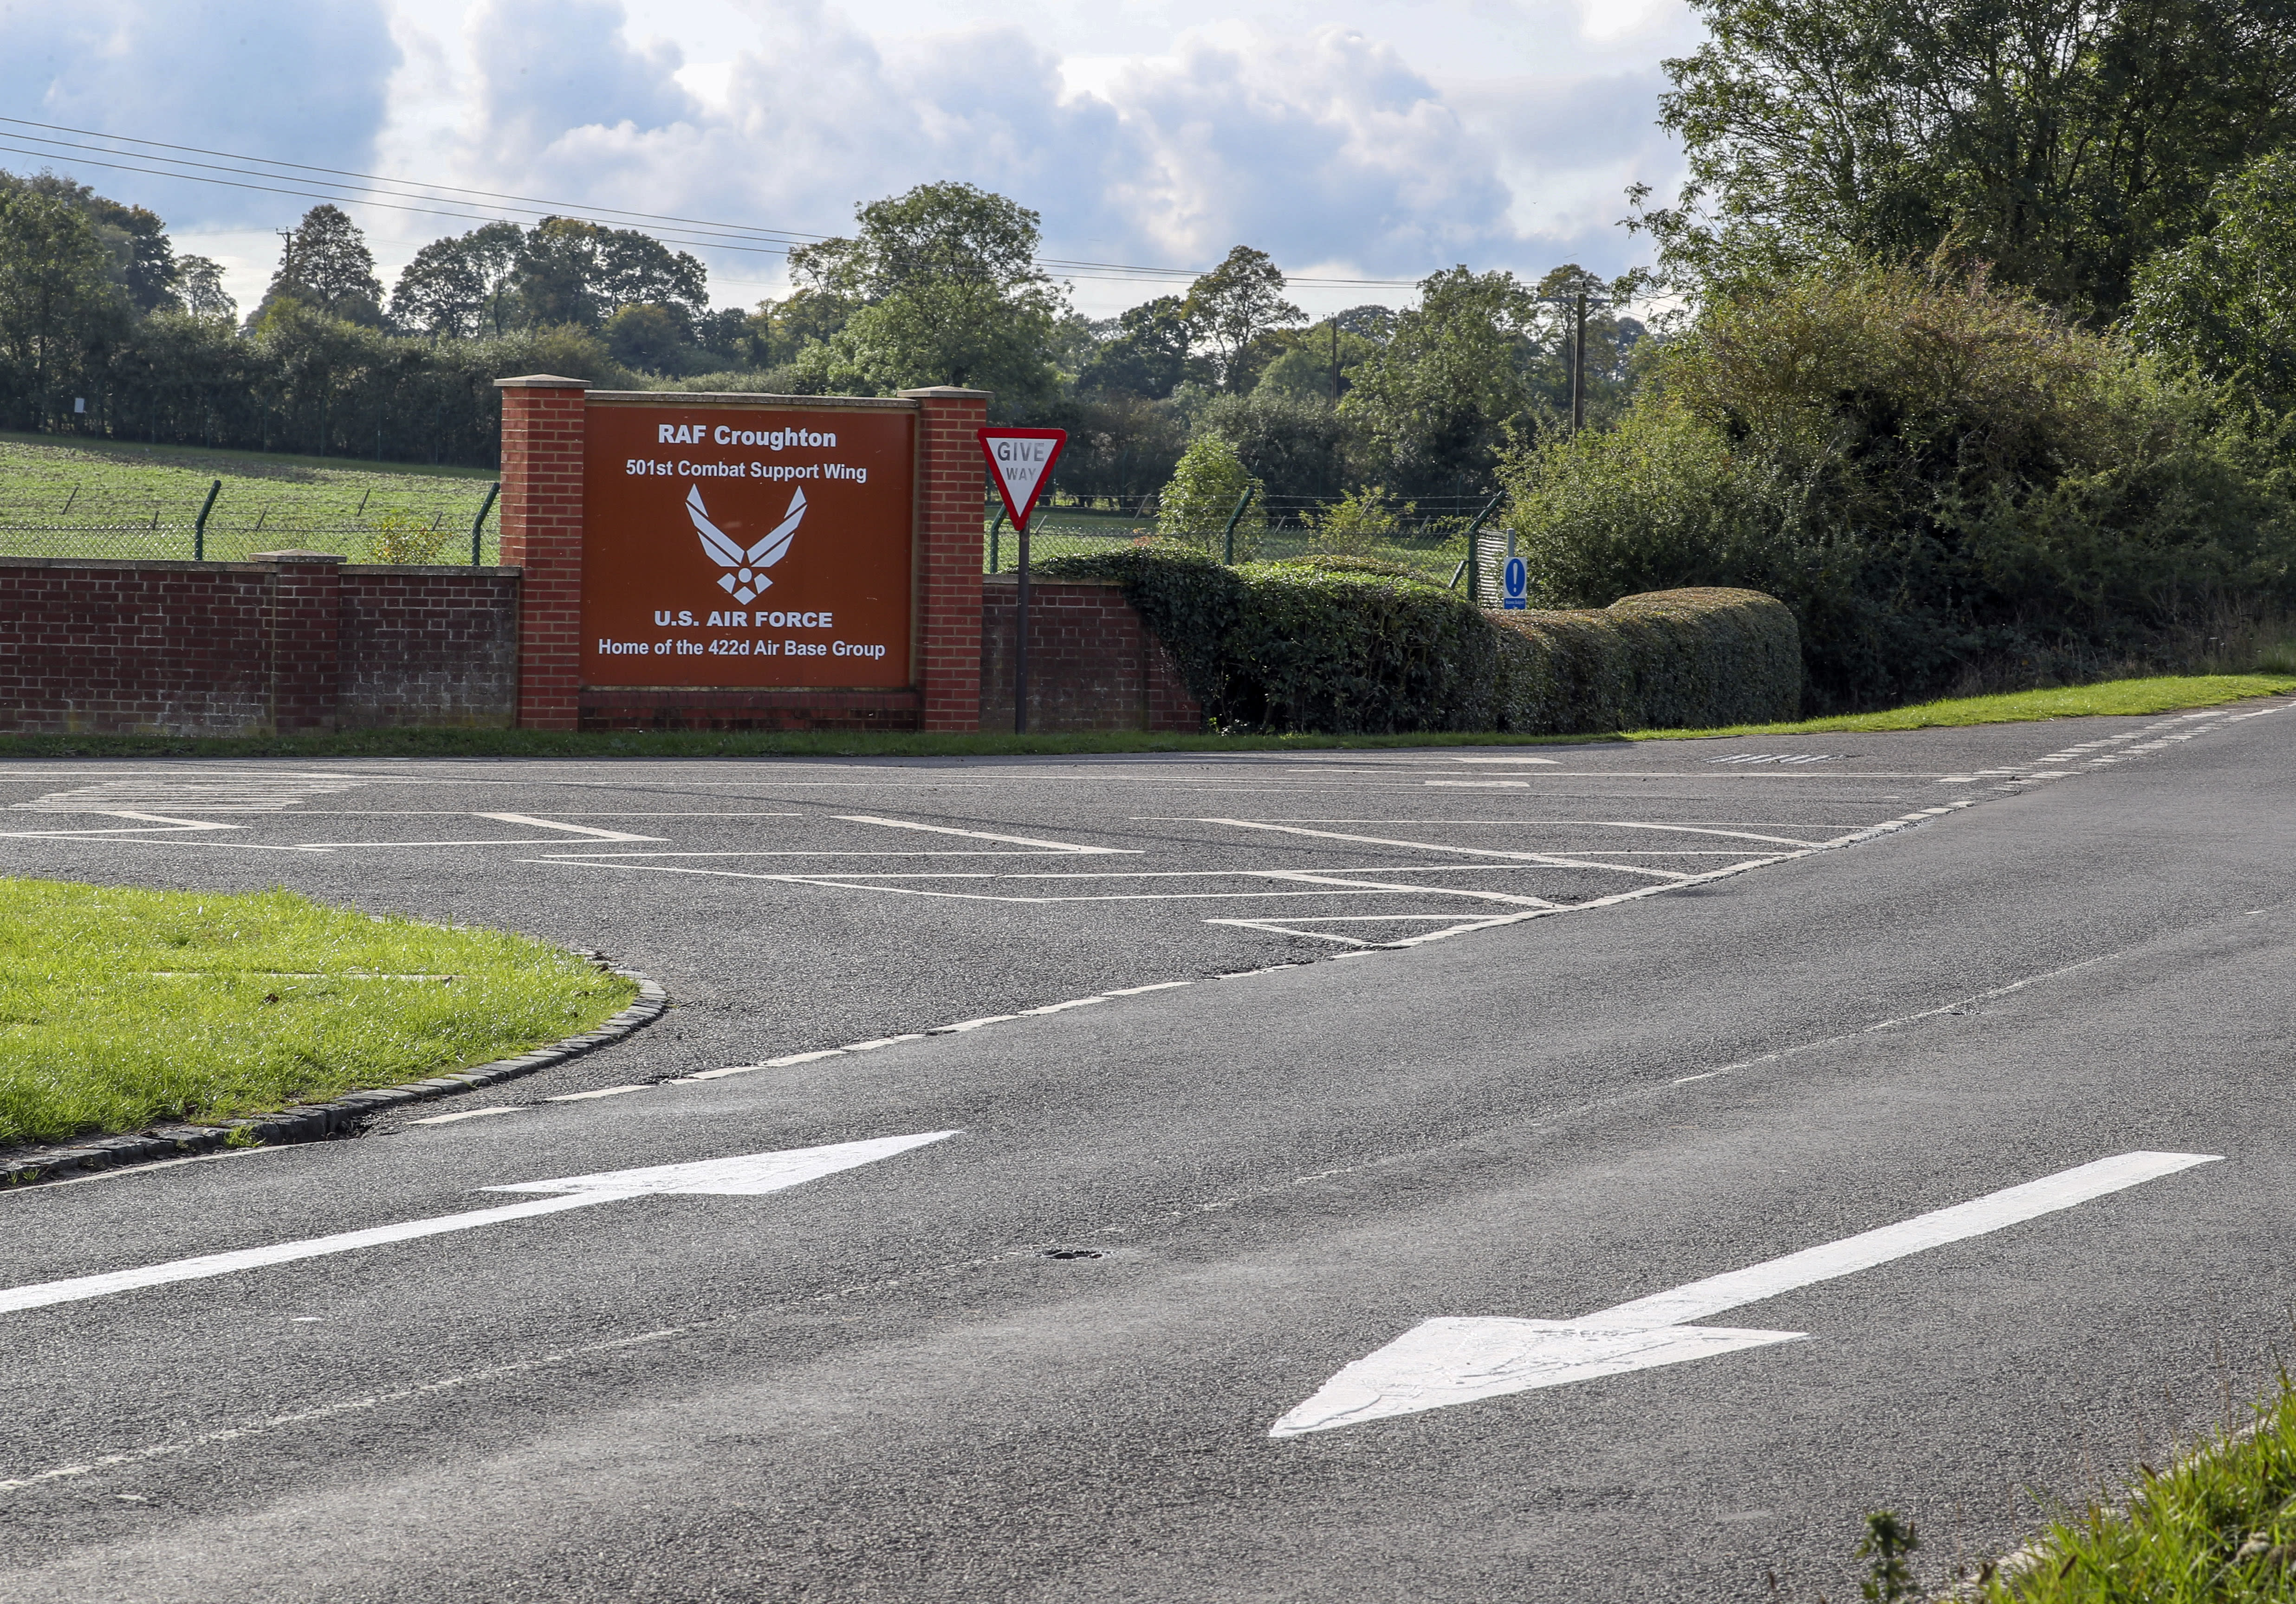 Drive on Left arrows on the road outside RAF Croughton, in Northamptonshire, near where Harry Dunn, 19, died when his motorbike was involved in a head-on collision in August.